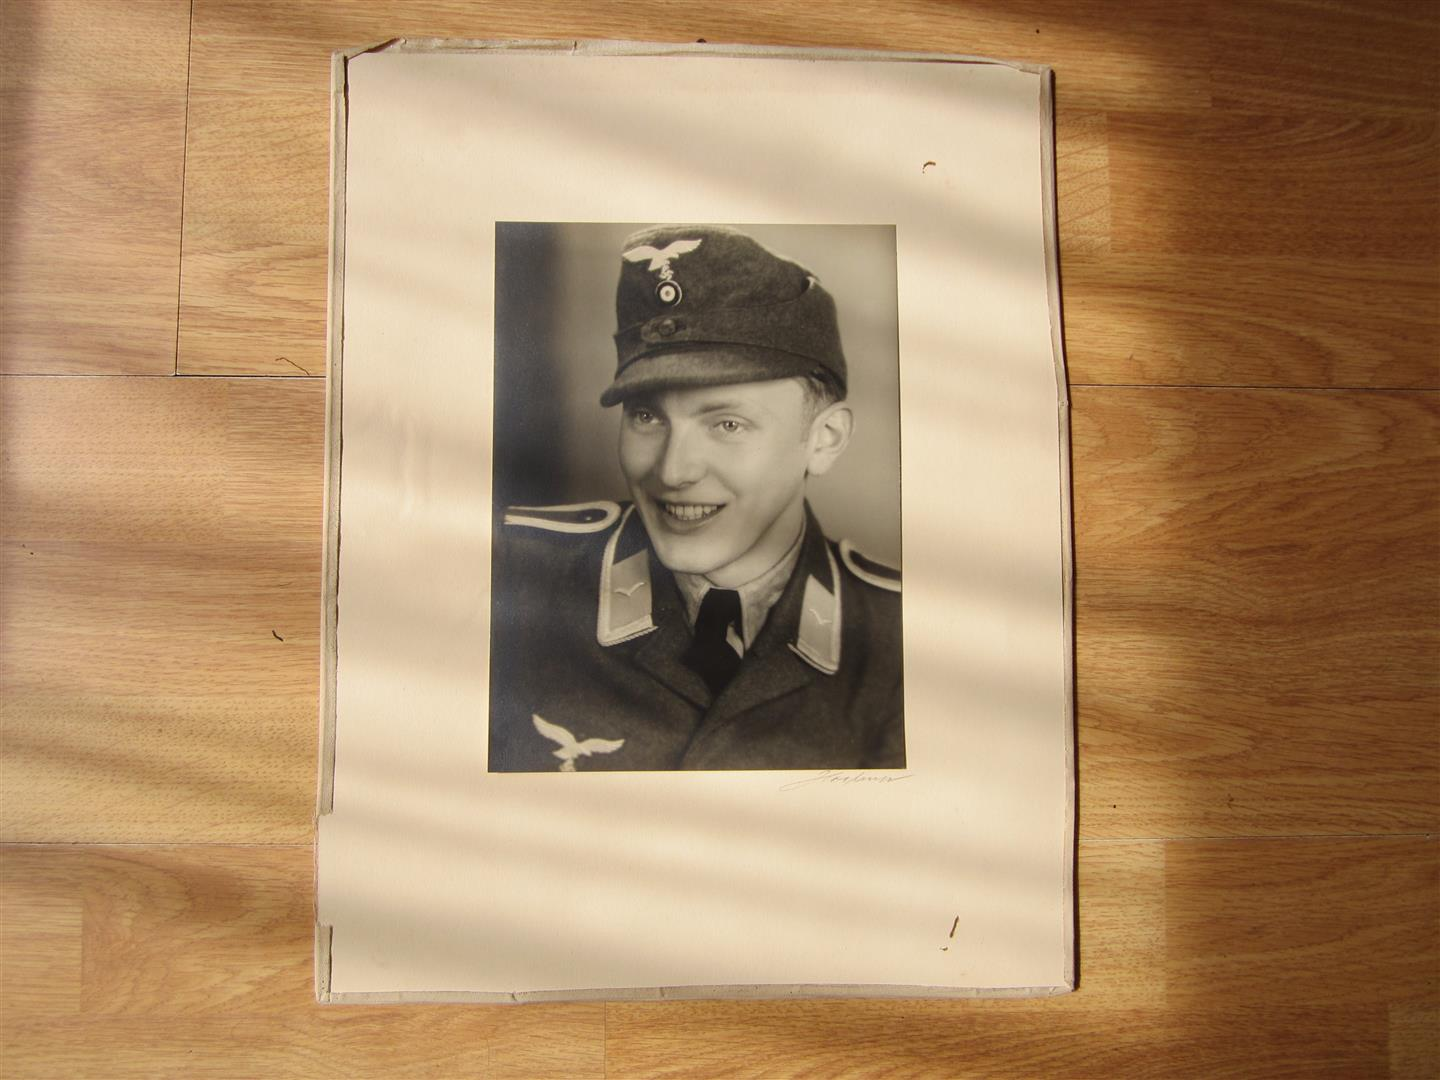 WW2 WL Photo of an Unterofficier